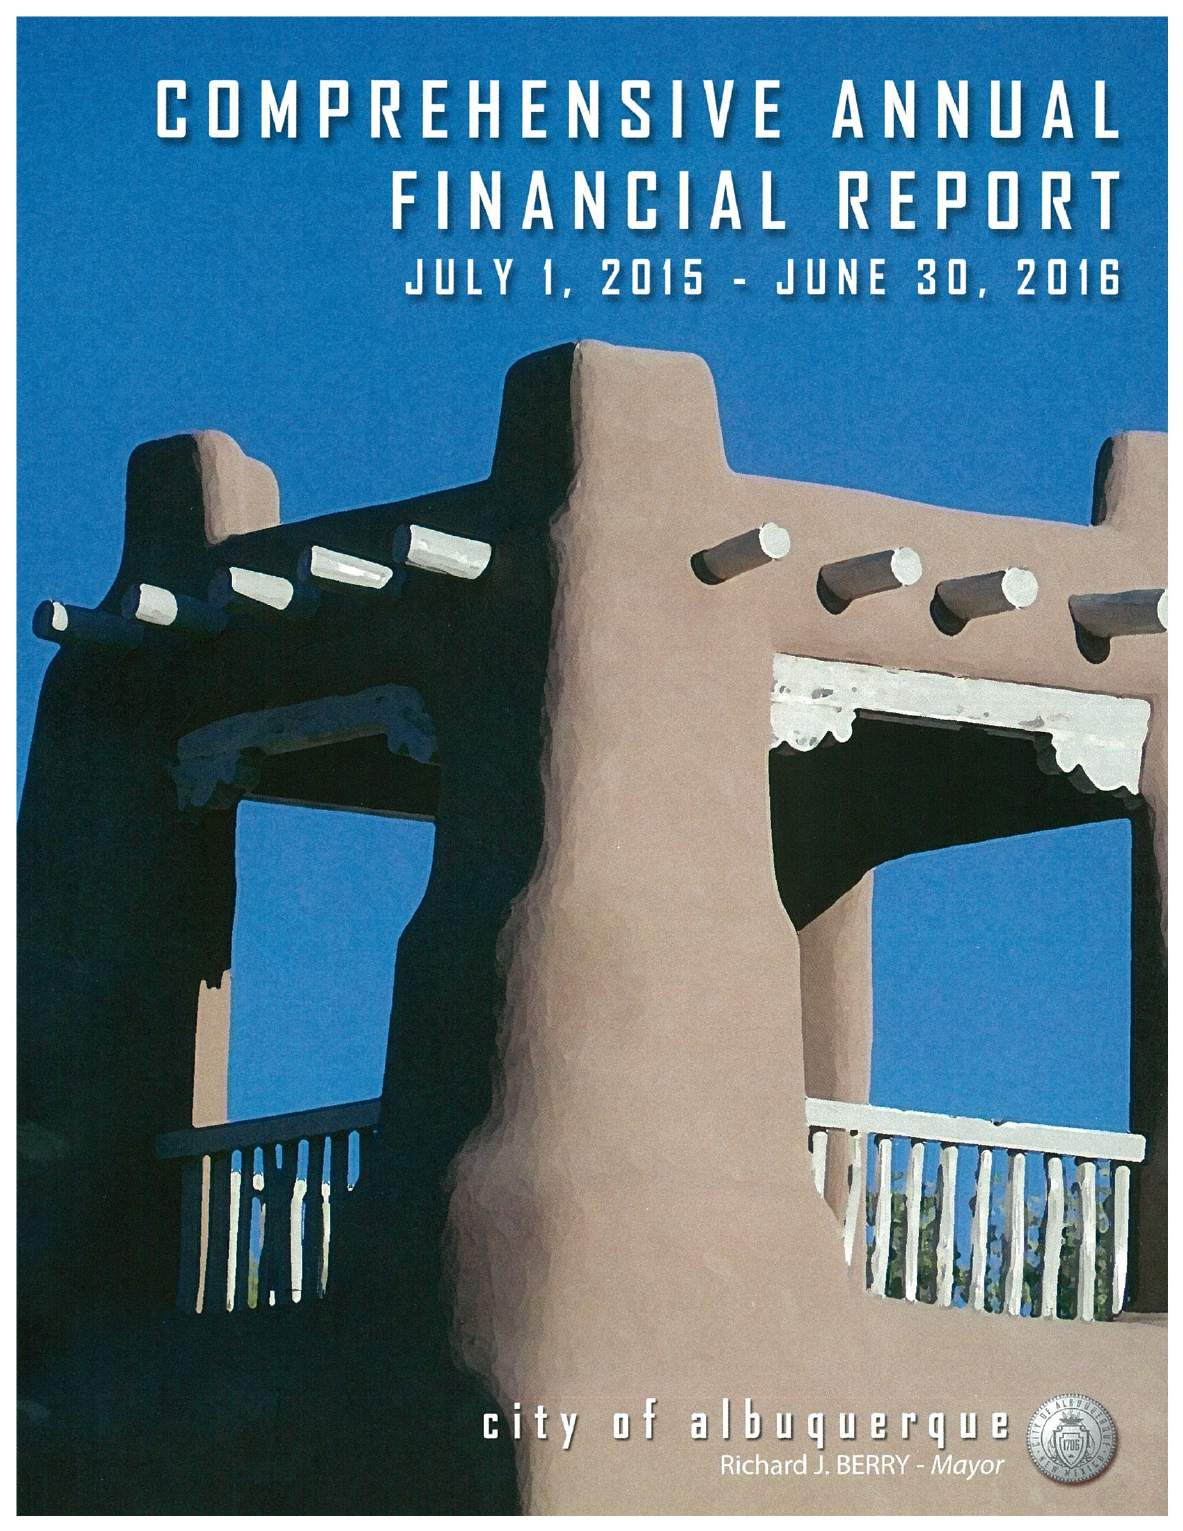 Comprehensive Annual Financial Report Cover - 2016